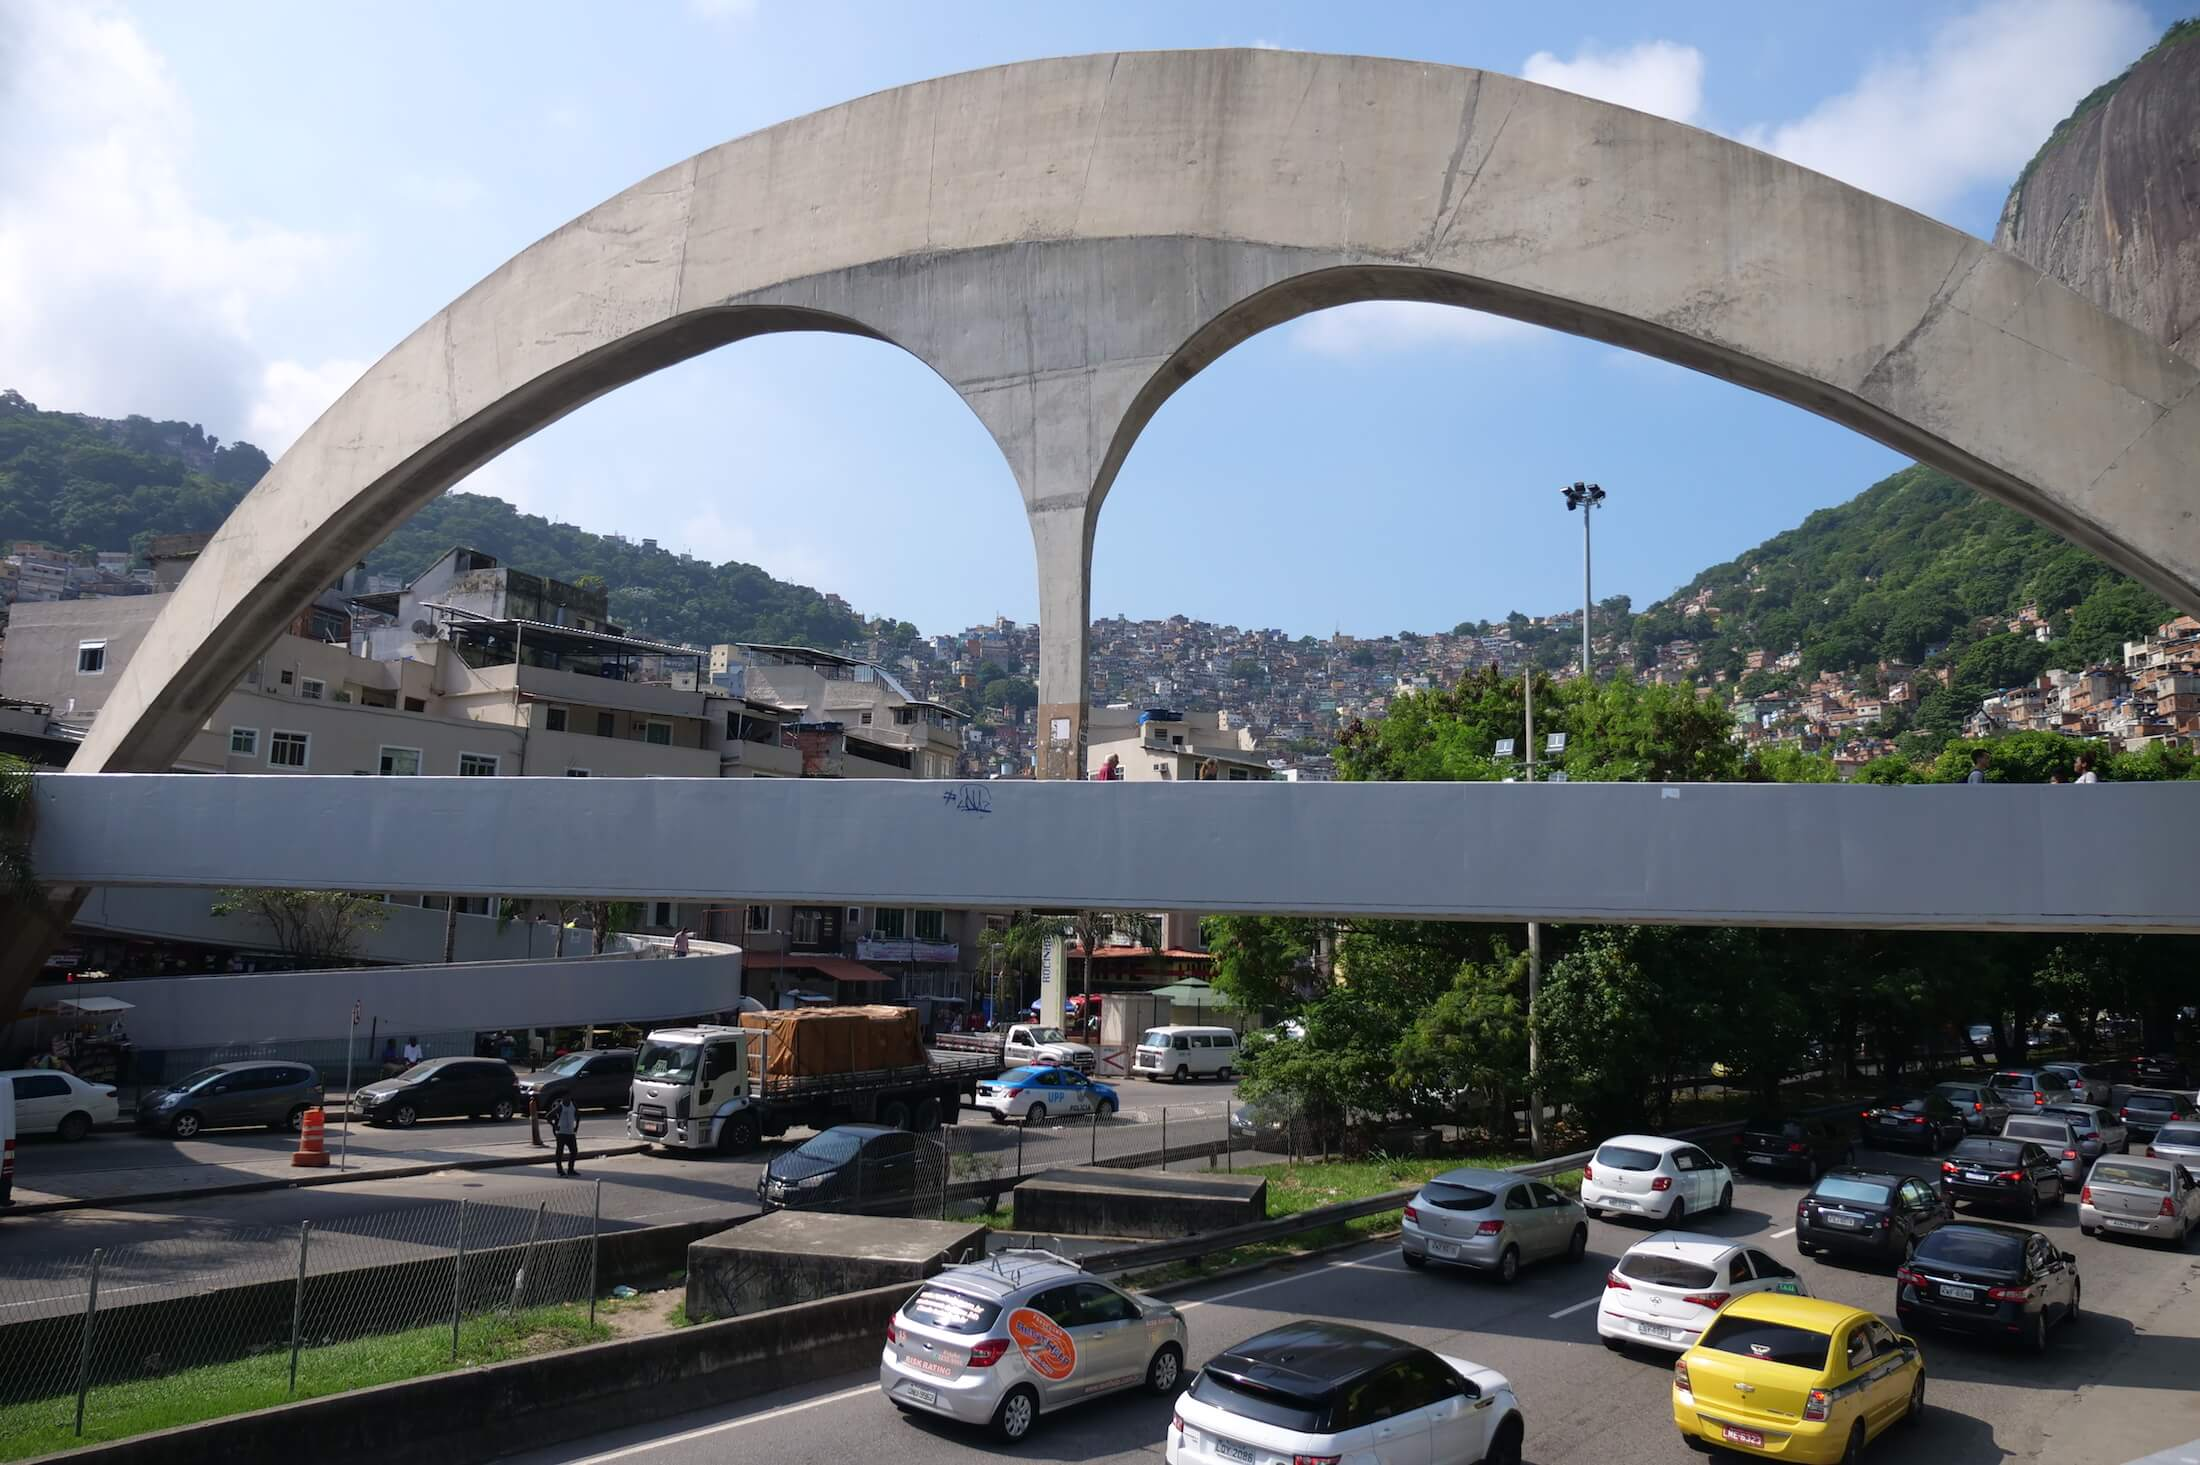 Take a bus, or taxi, and get off when you see this huge arch over the entrance to Rocinha favela